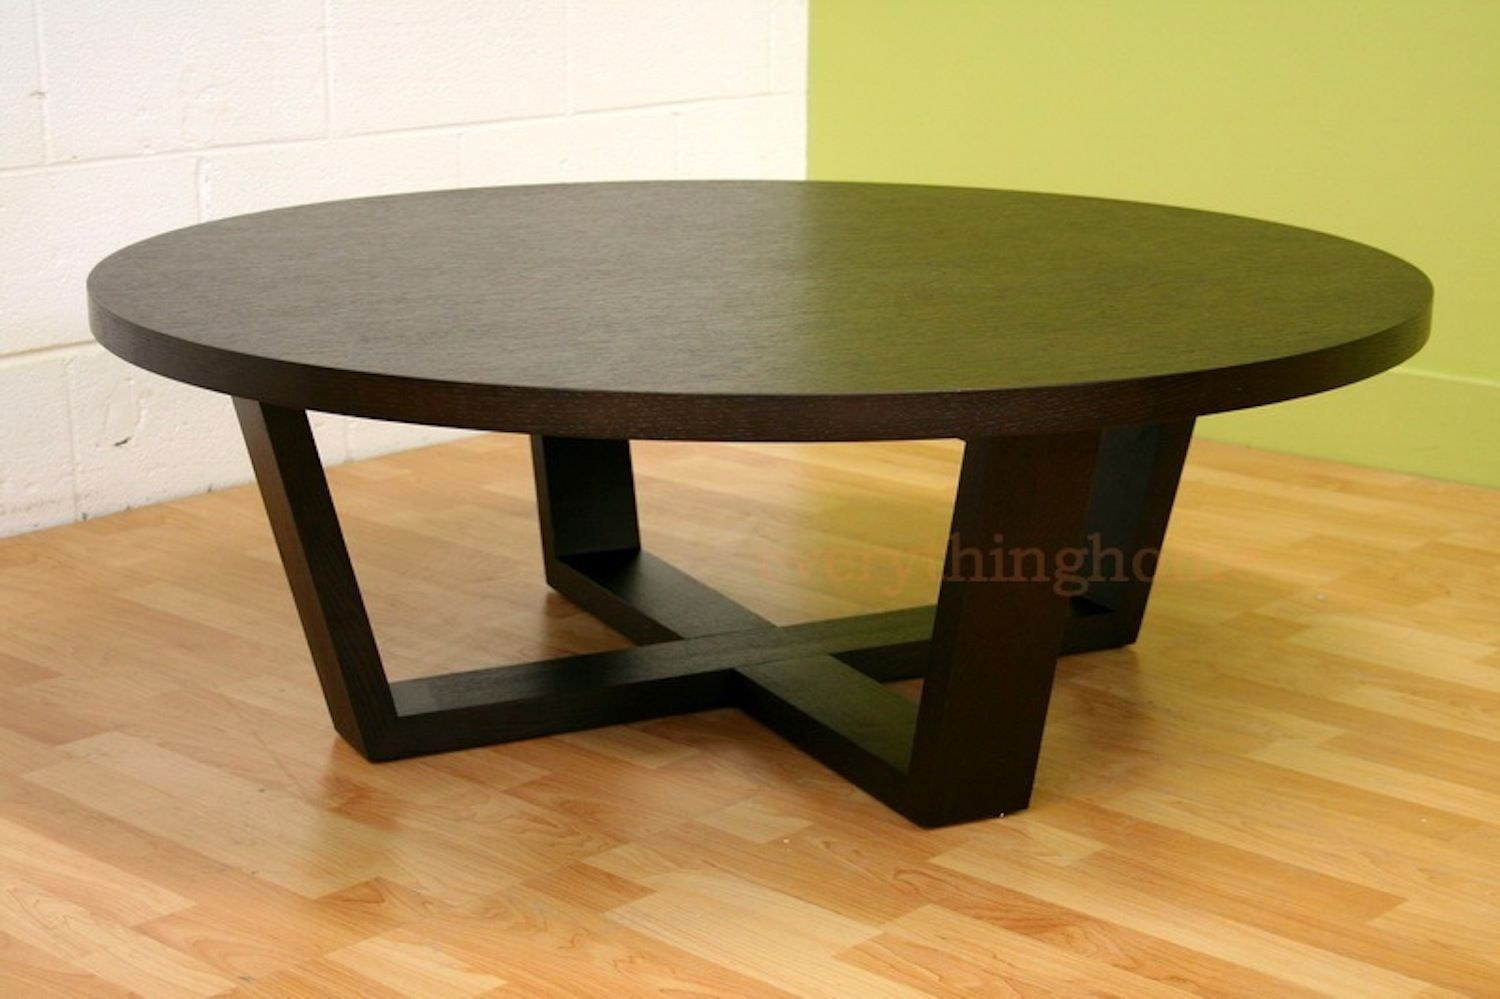 Round Black Coffee Table Sturdy And Durable The Thick Black